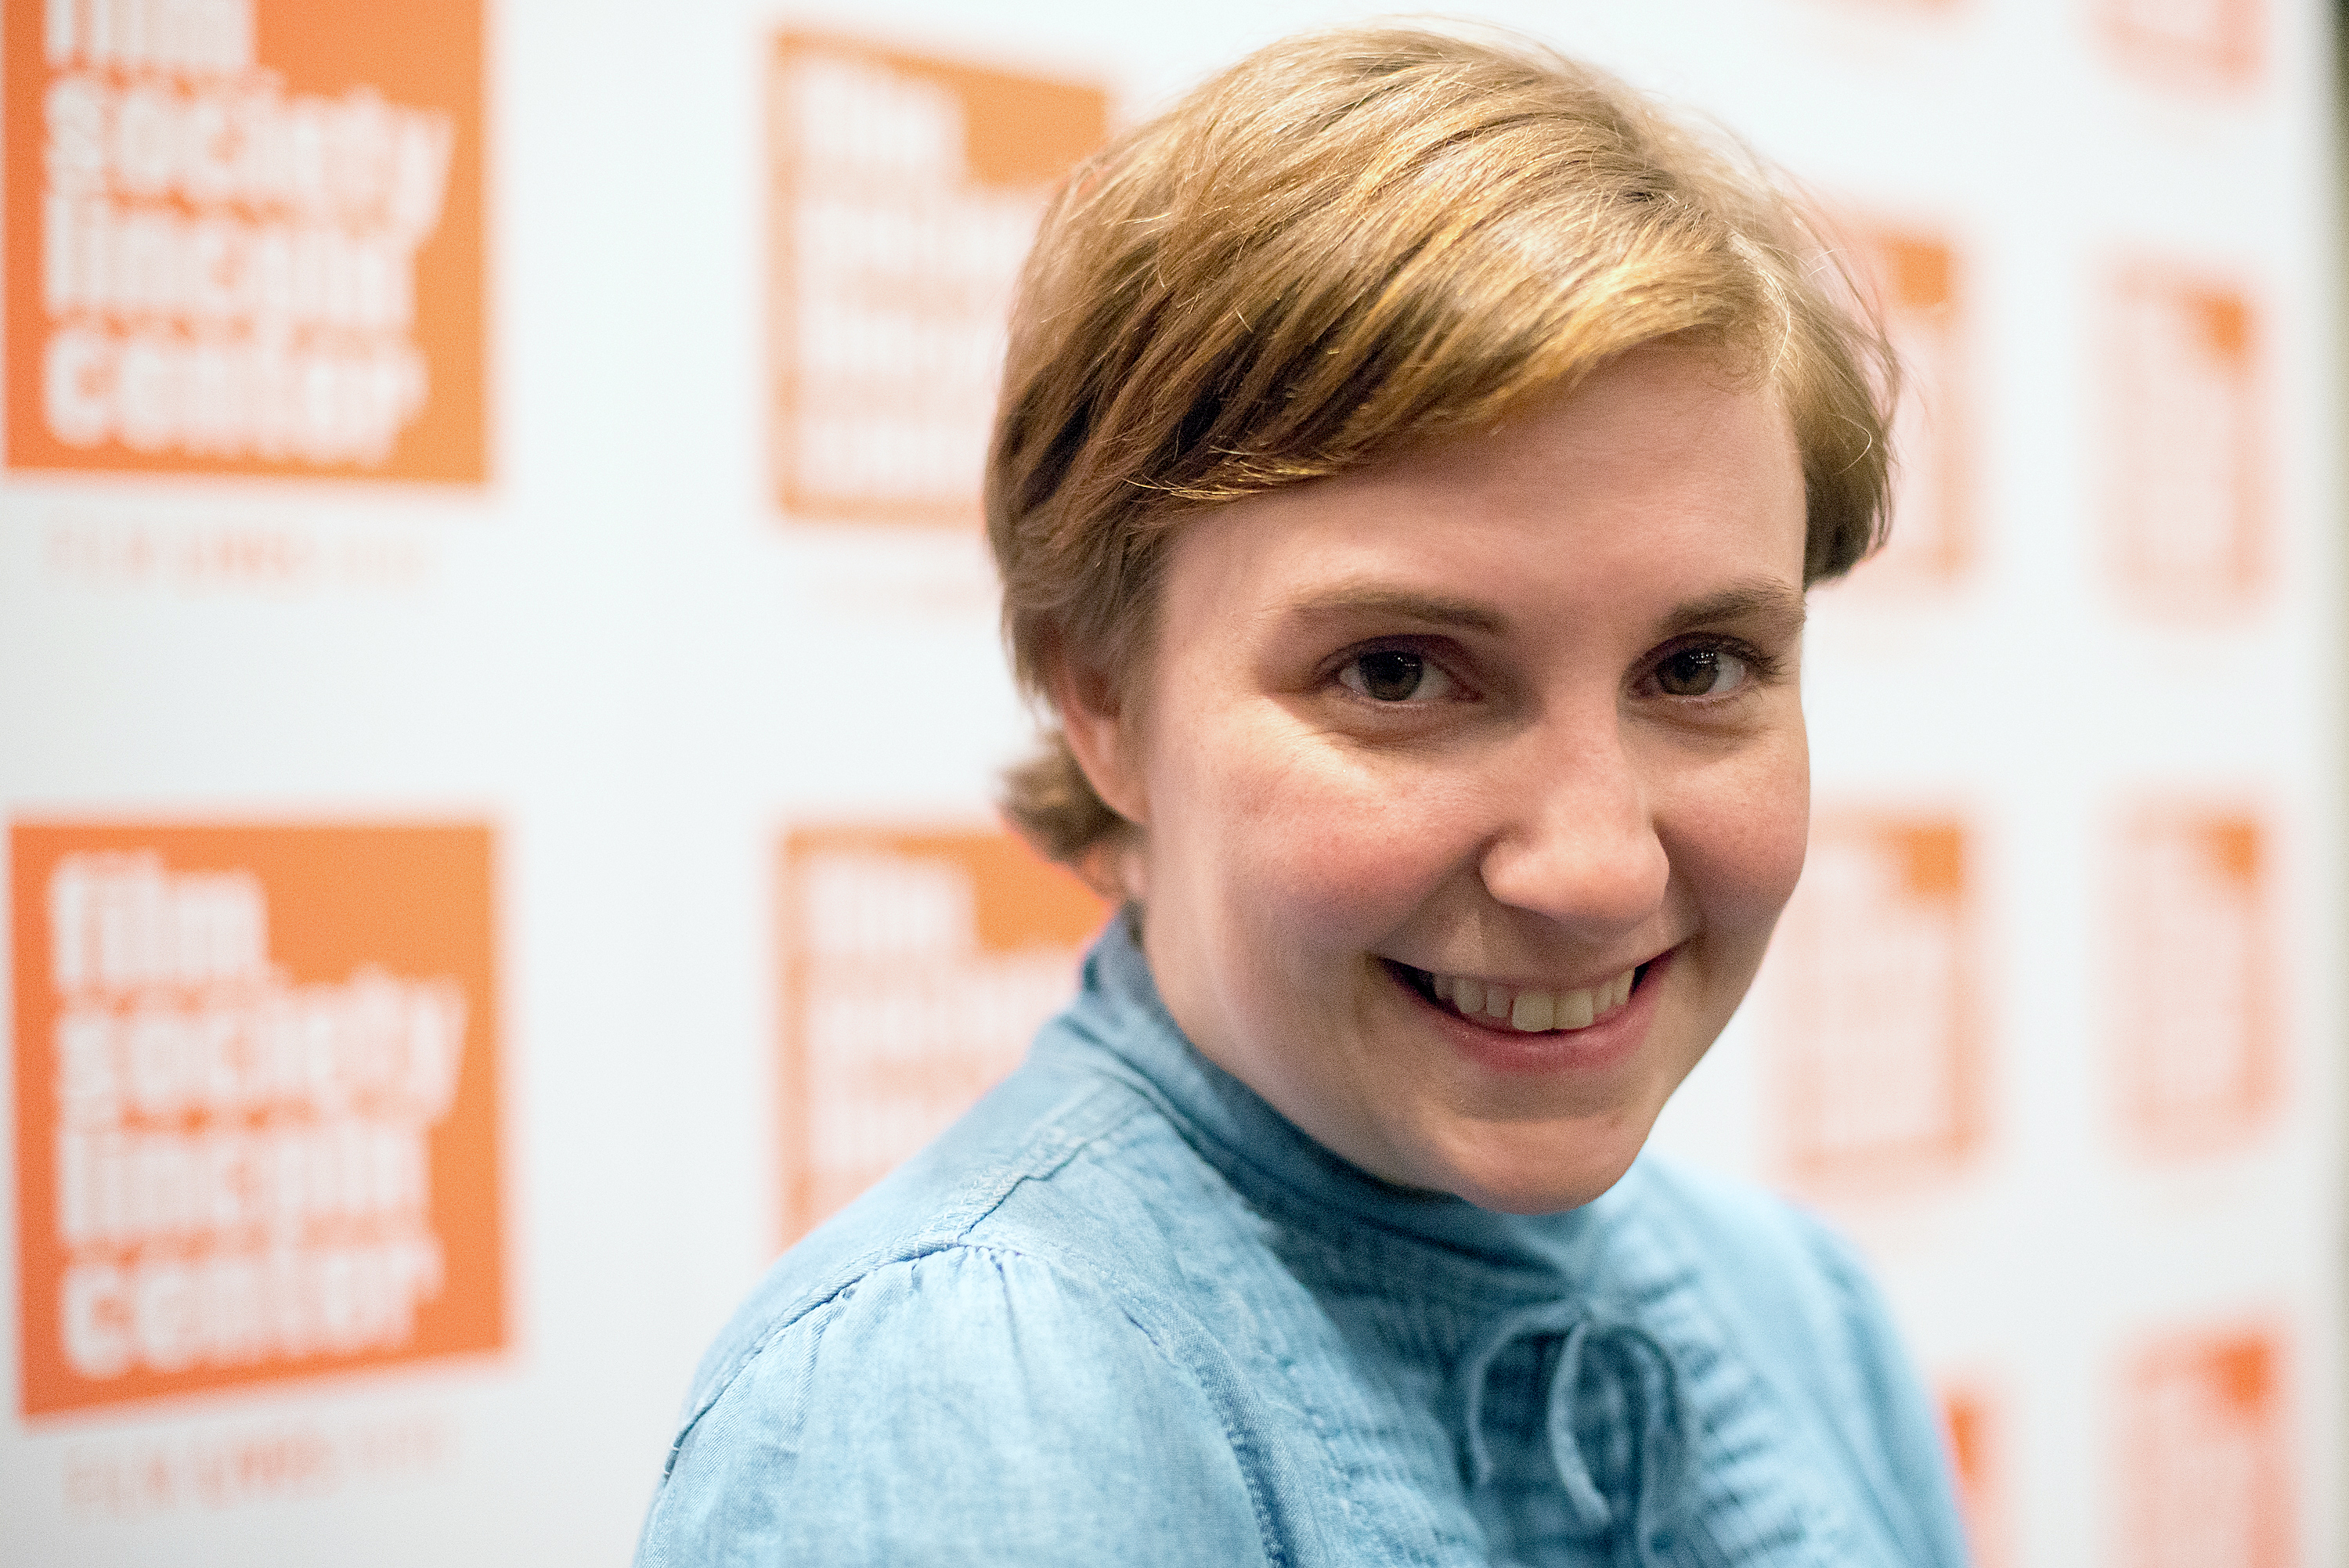 Lena Dunham at the 2015 Film Society of Lincoln Center Summer Talks on July 13, 2015  in New York City.